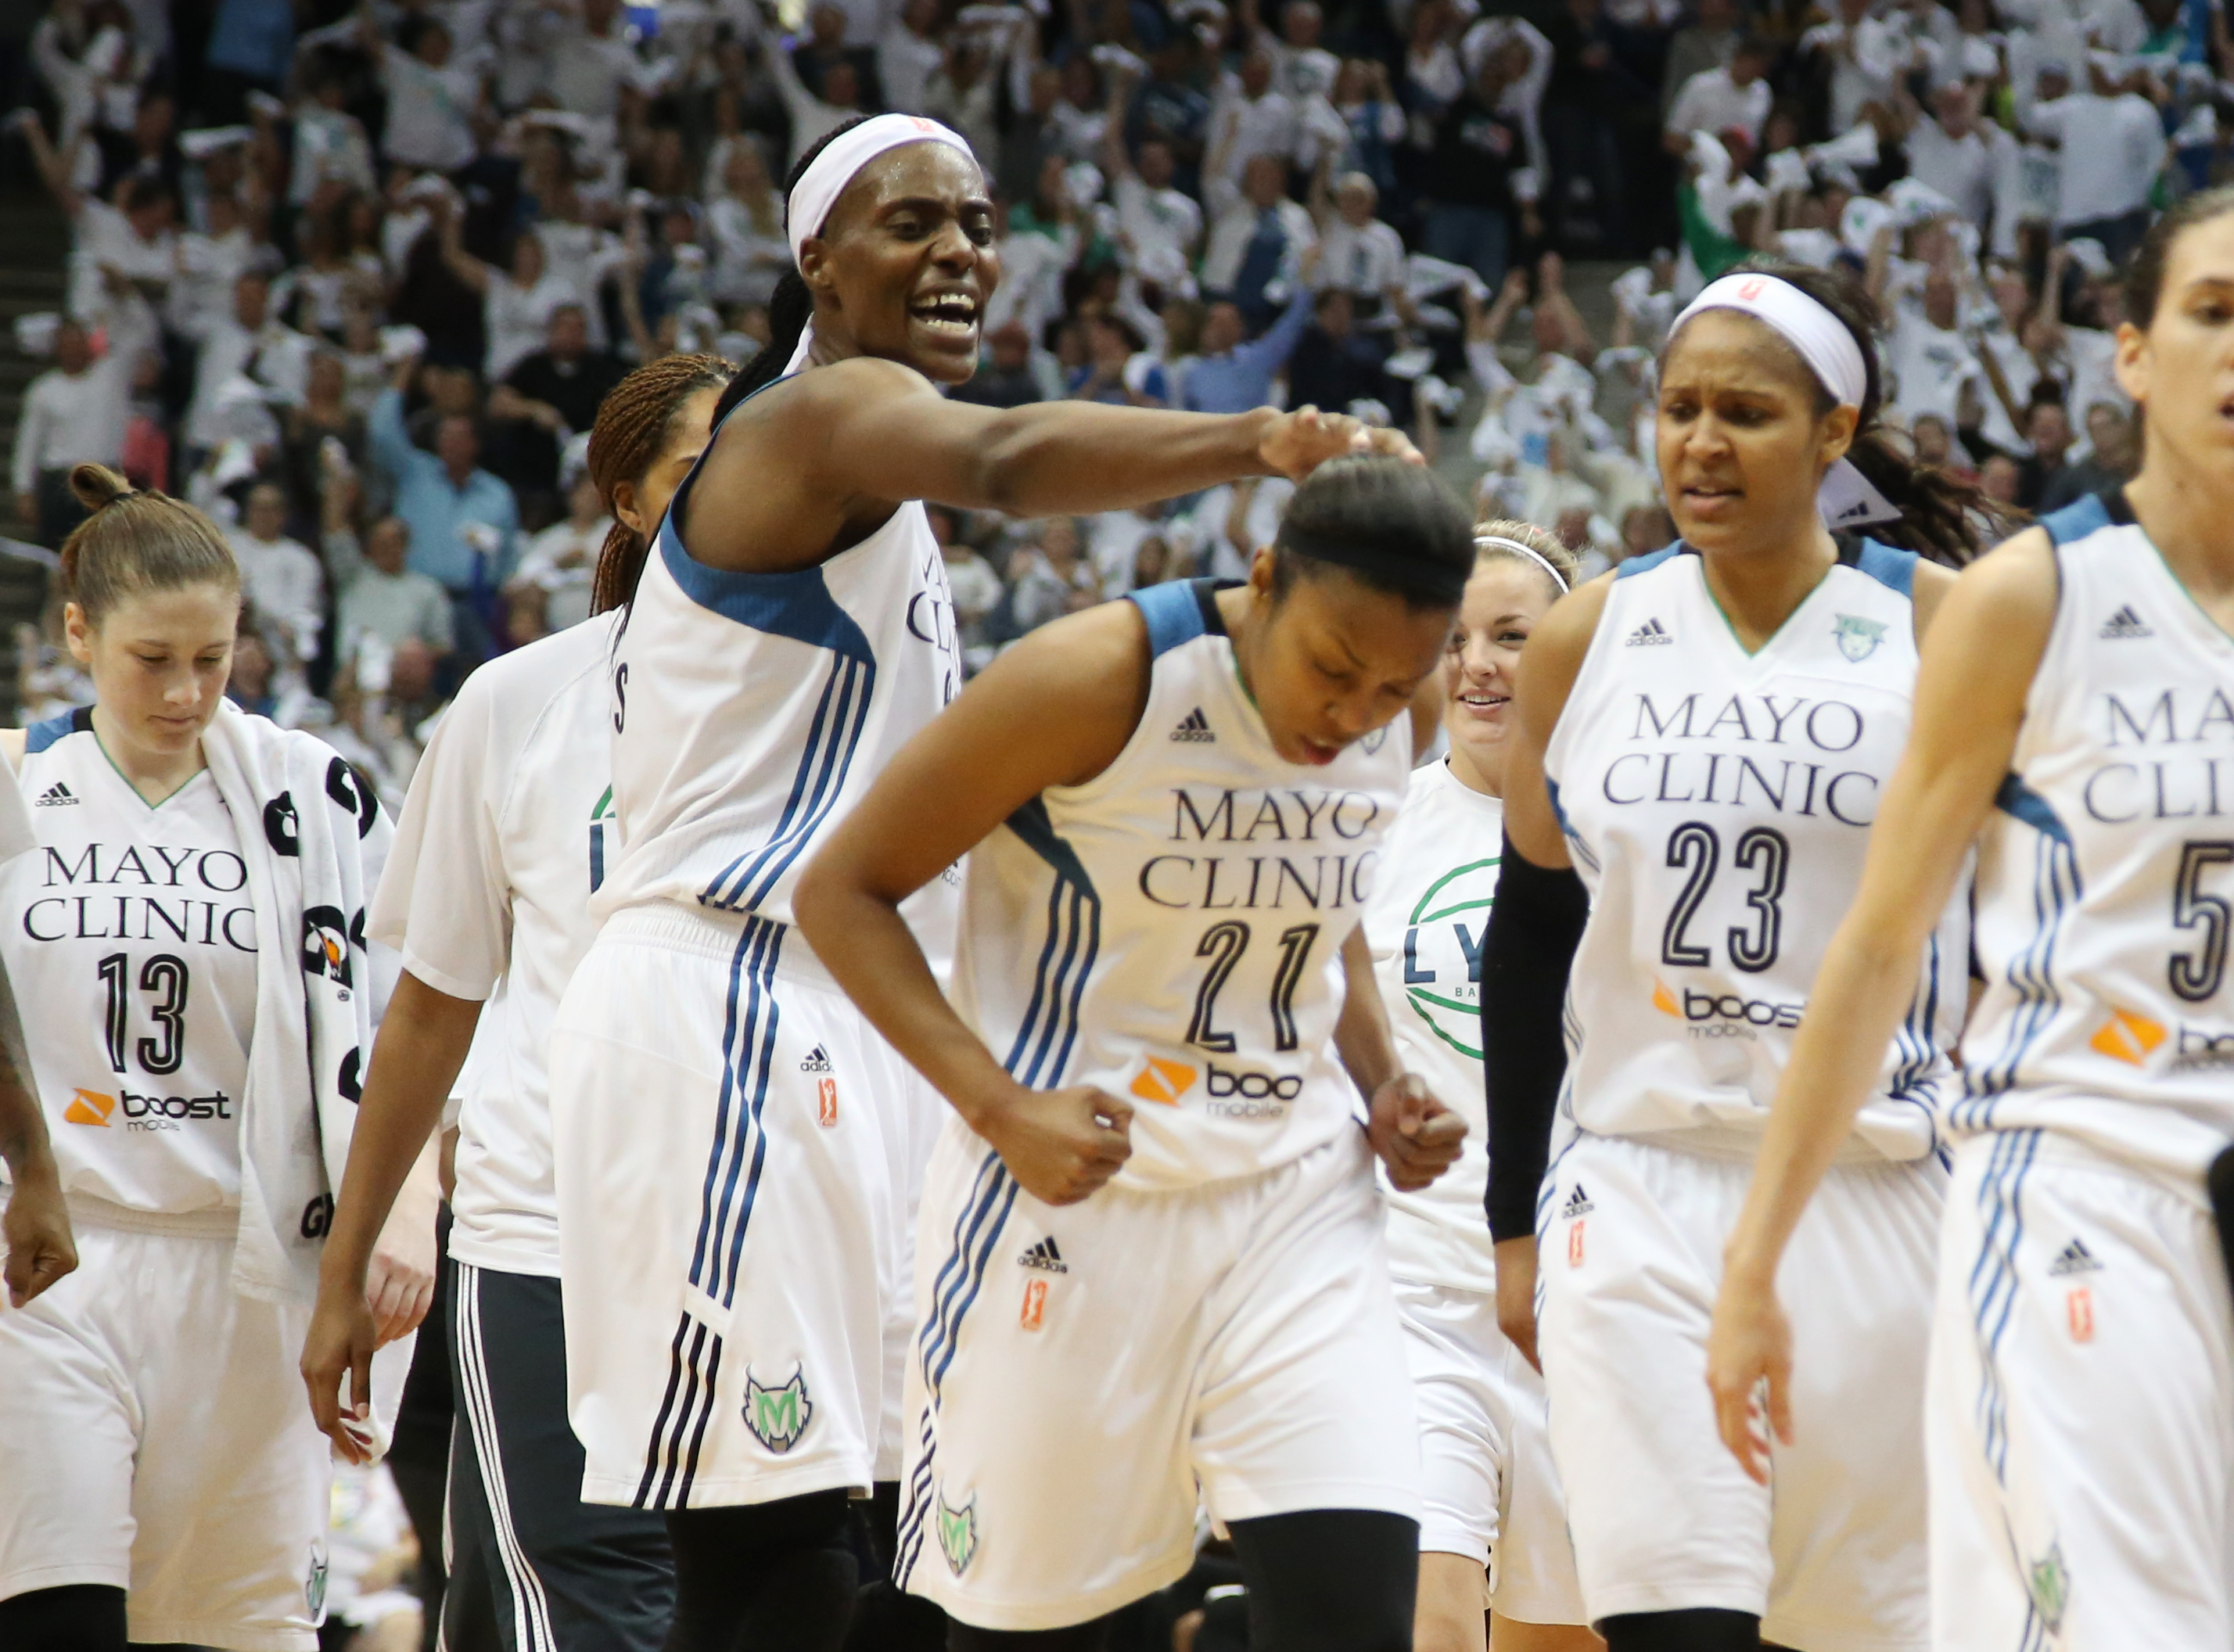 Minnesota Lynx center Sylvia Fowles (34) congratulates Minnesota Lynx guard Renee Montgomery (21) during the second half.   ] (KYNDELL HARKNESS/STAR TRIBUNE) kyndell.harkness@startribune.com  Game 5 of the WNBA finals Lynx vs Indiana at the Target Center in Minneapolis, Min., Wednesday October 14,  2015.